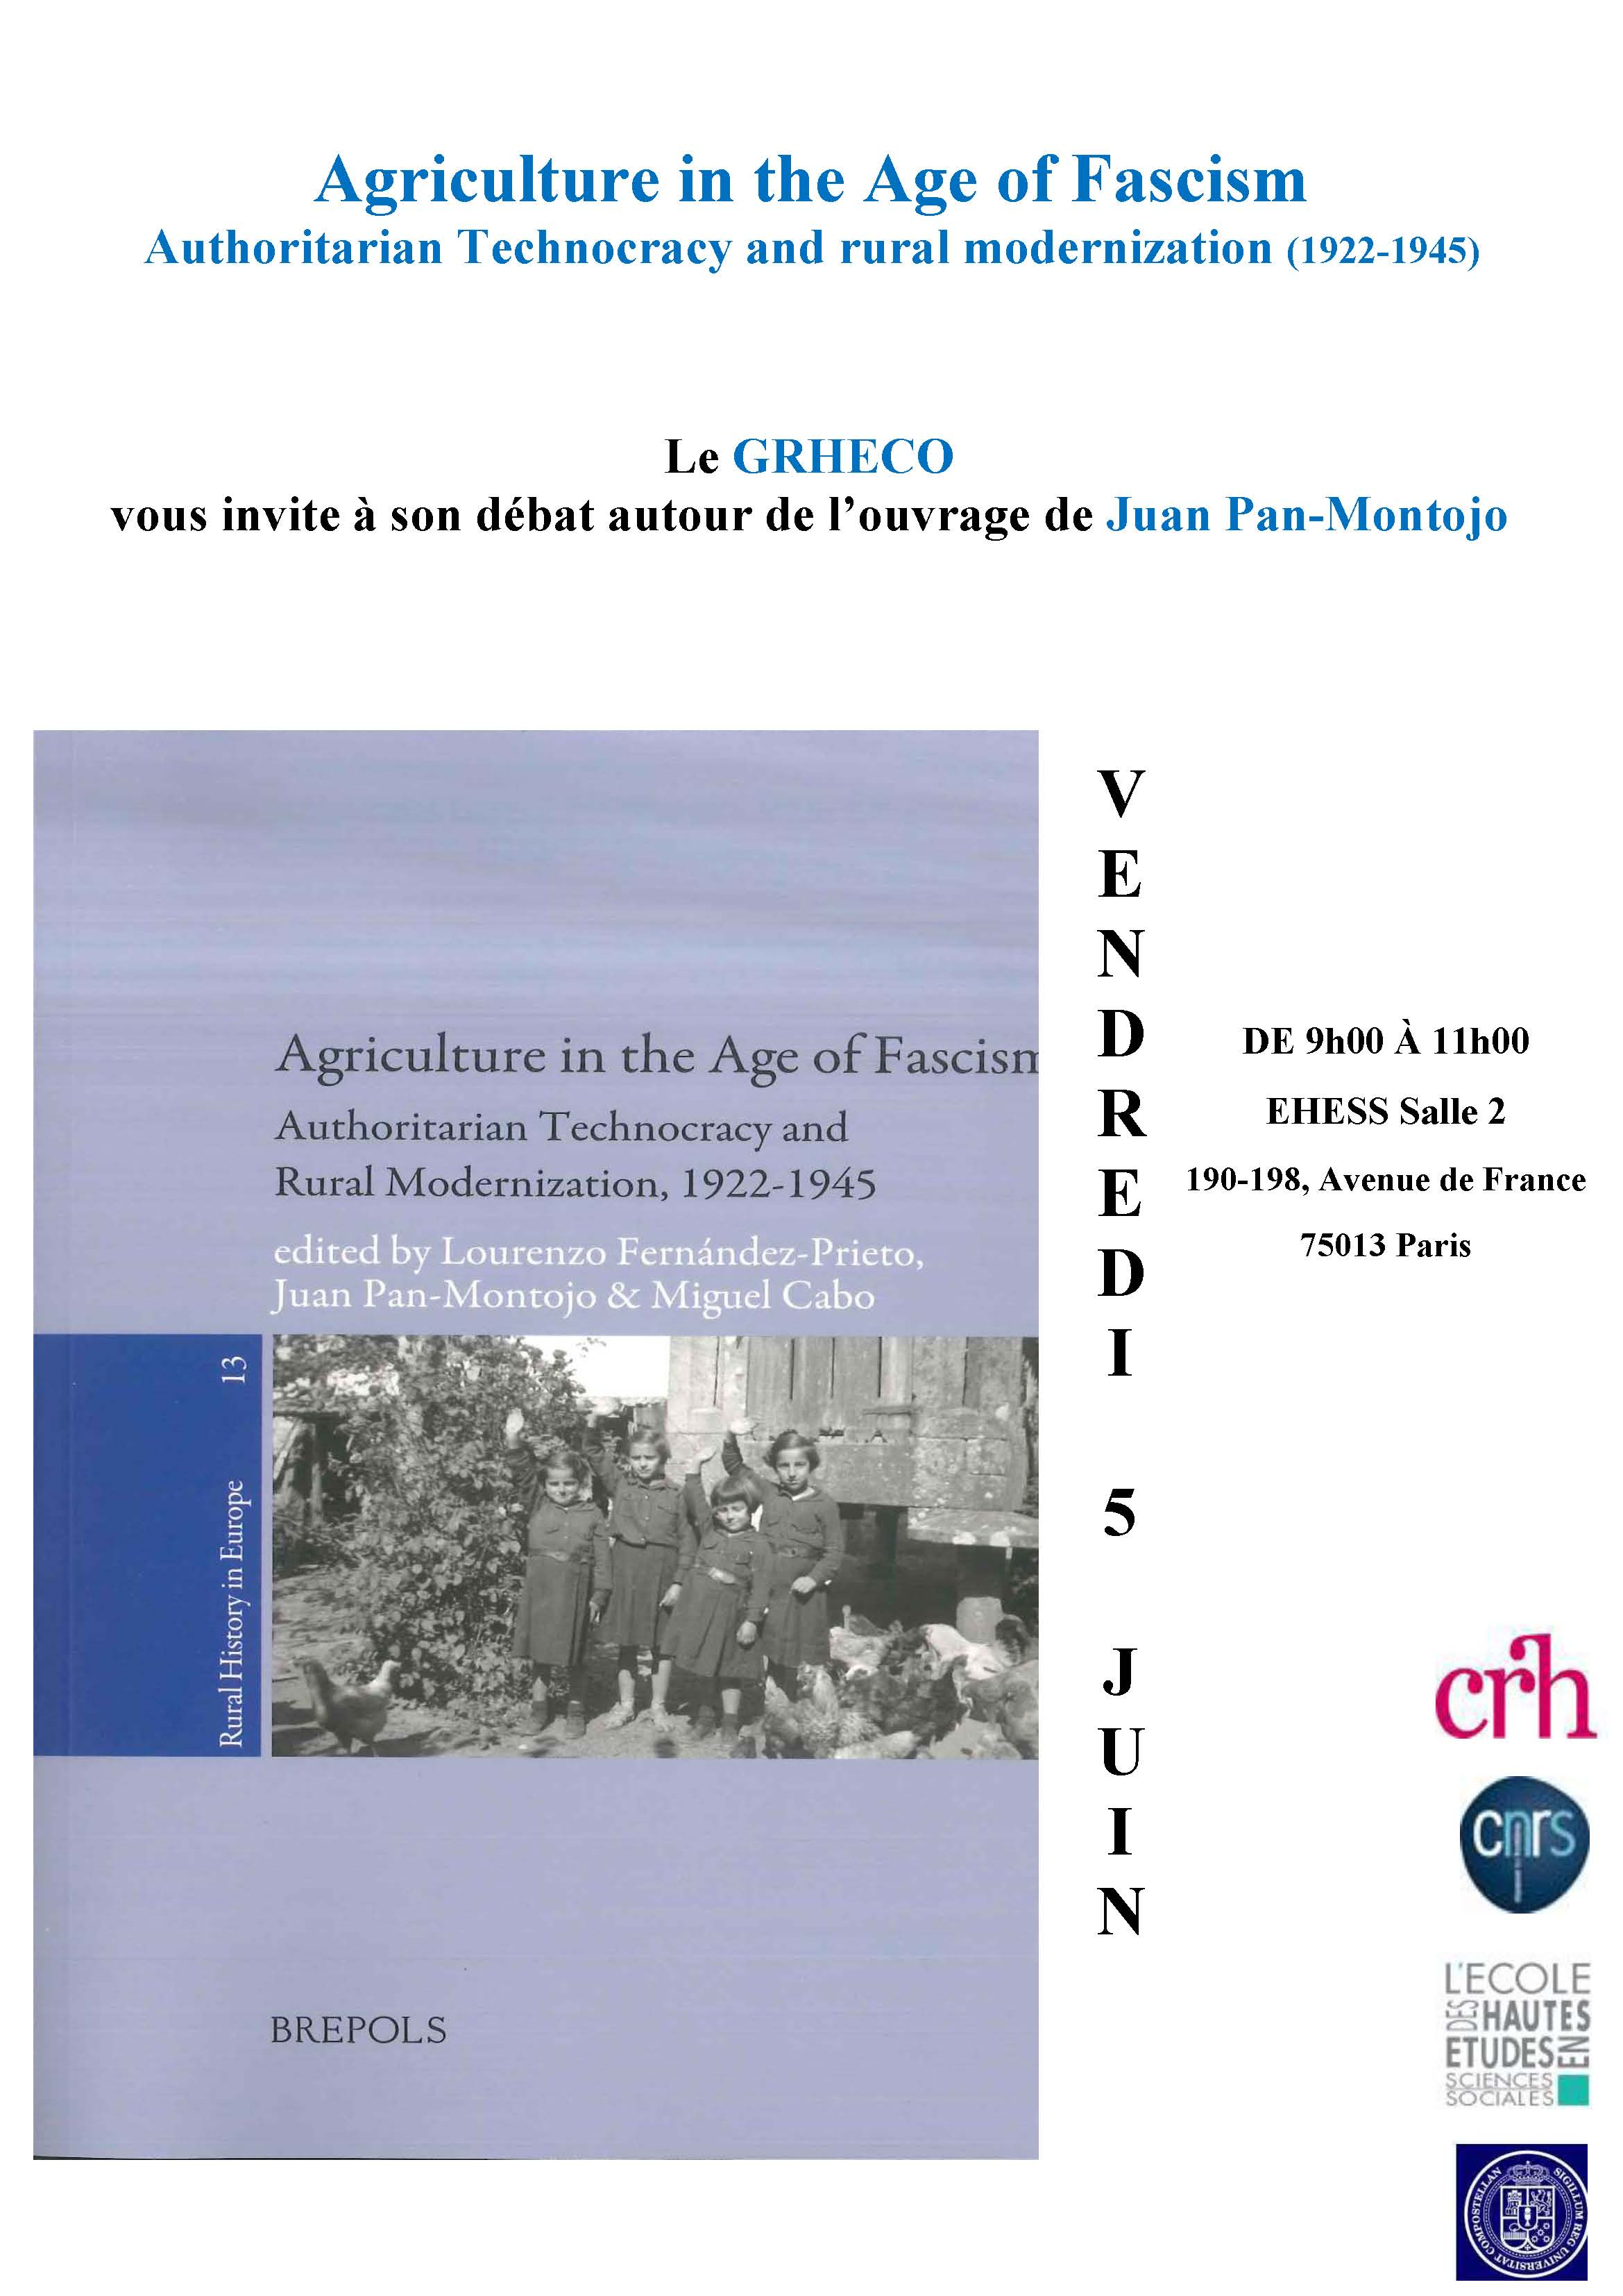 Agriculture in the Age of Fascism. Authoritarian Technocracy and rural modernization, 1922-1945